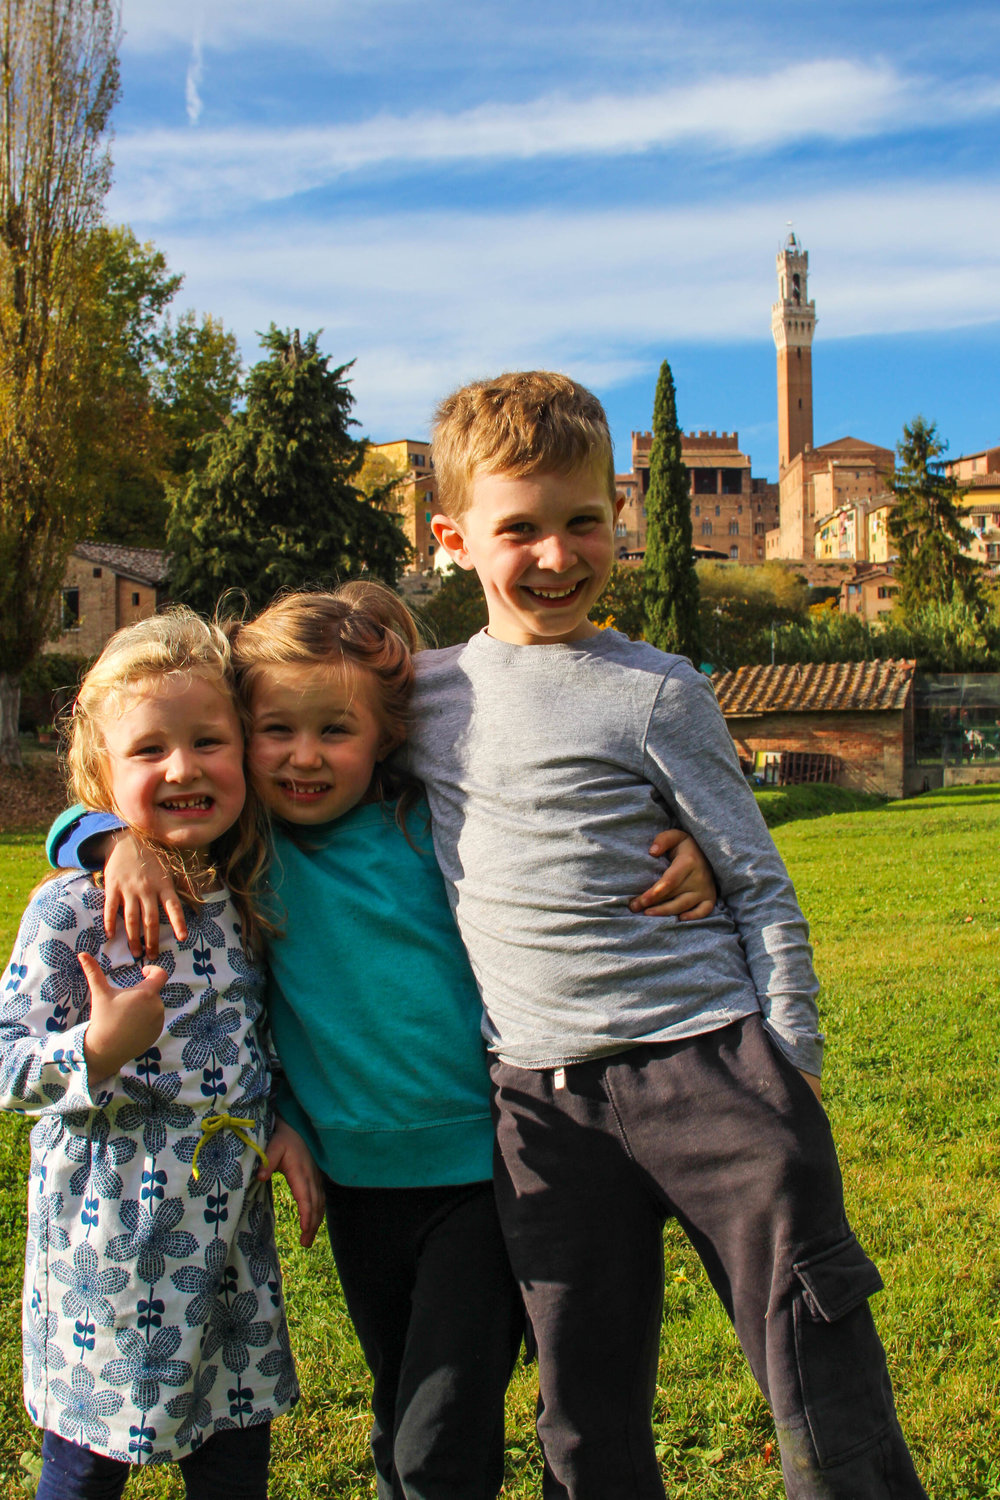 Orto de' Pecci - a green oasis in the middle of Siena